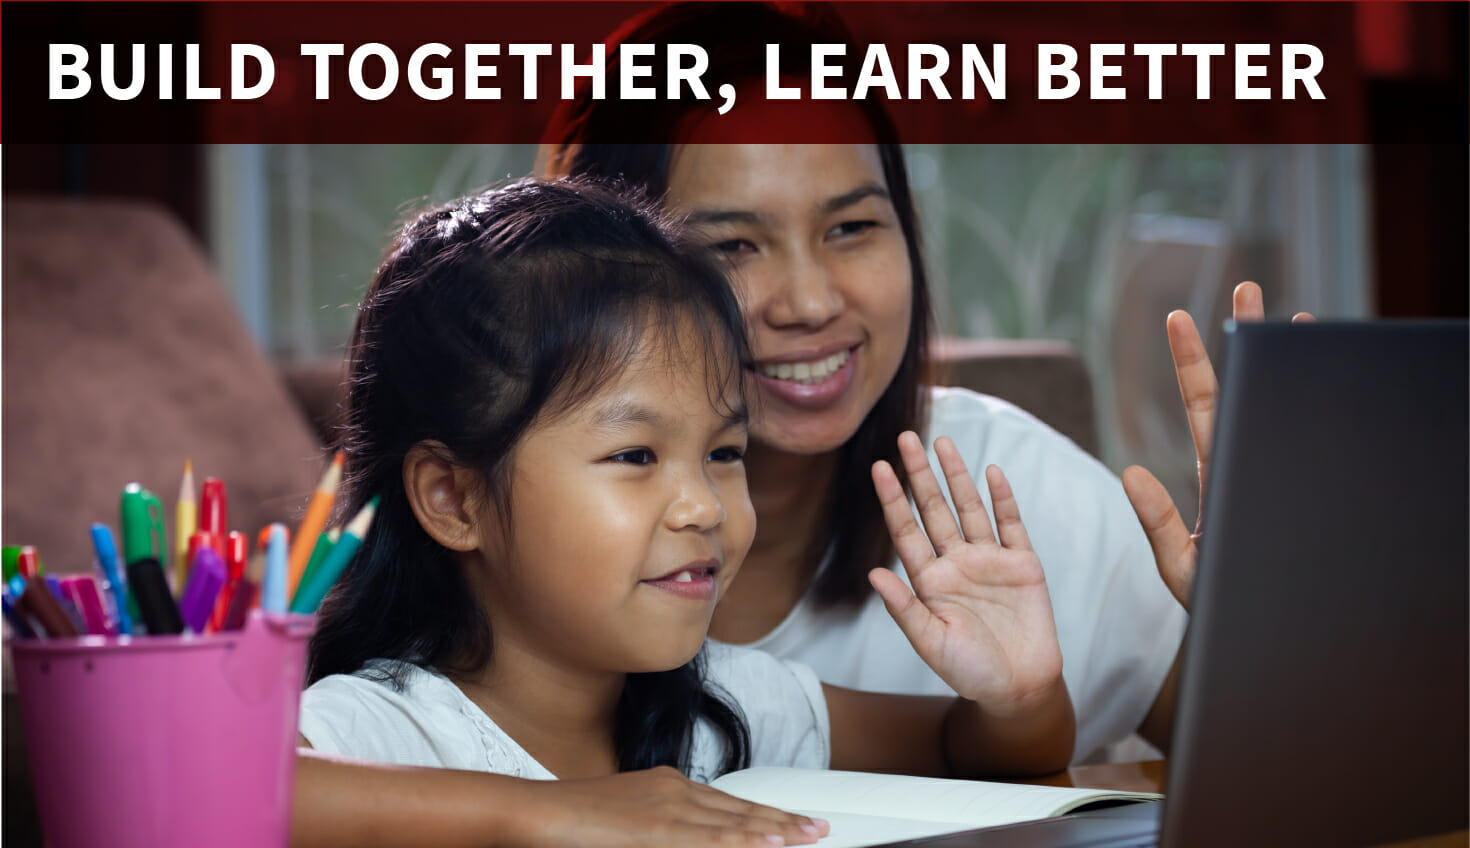 Built Together, Learn Better